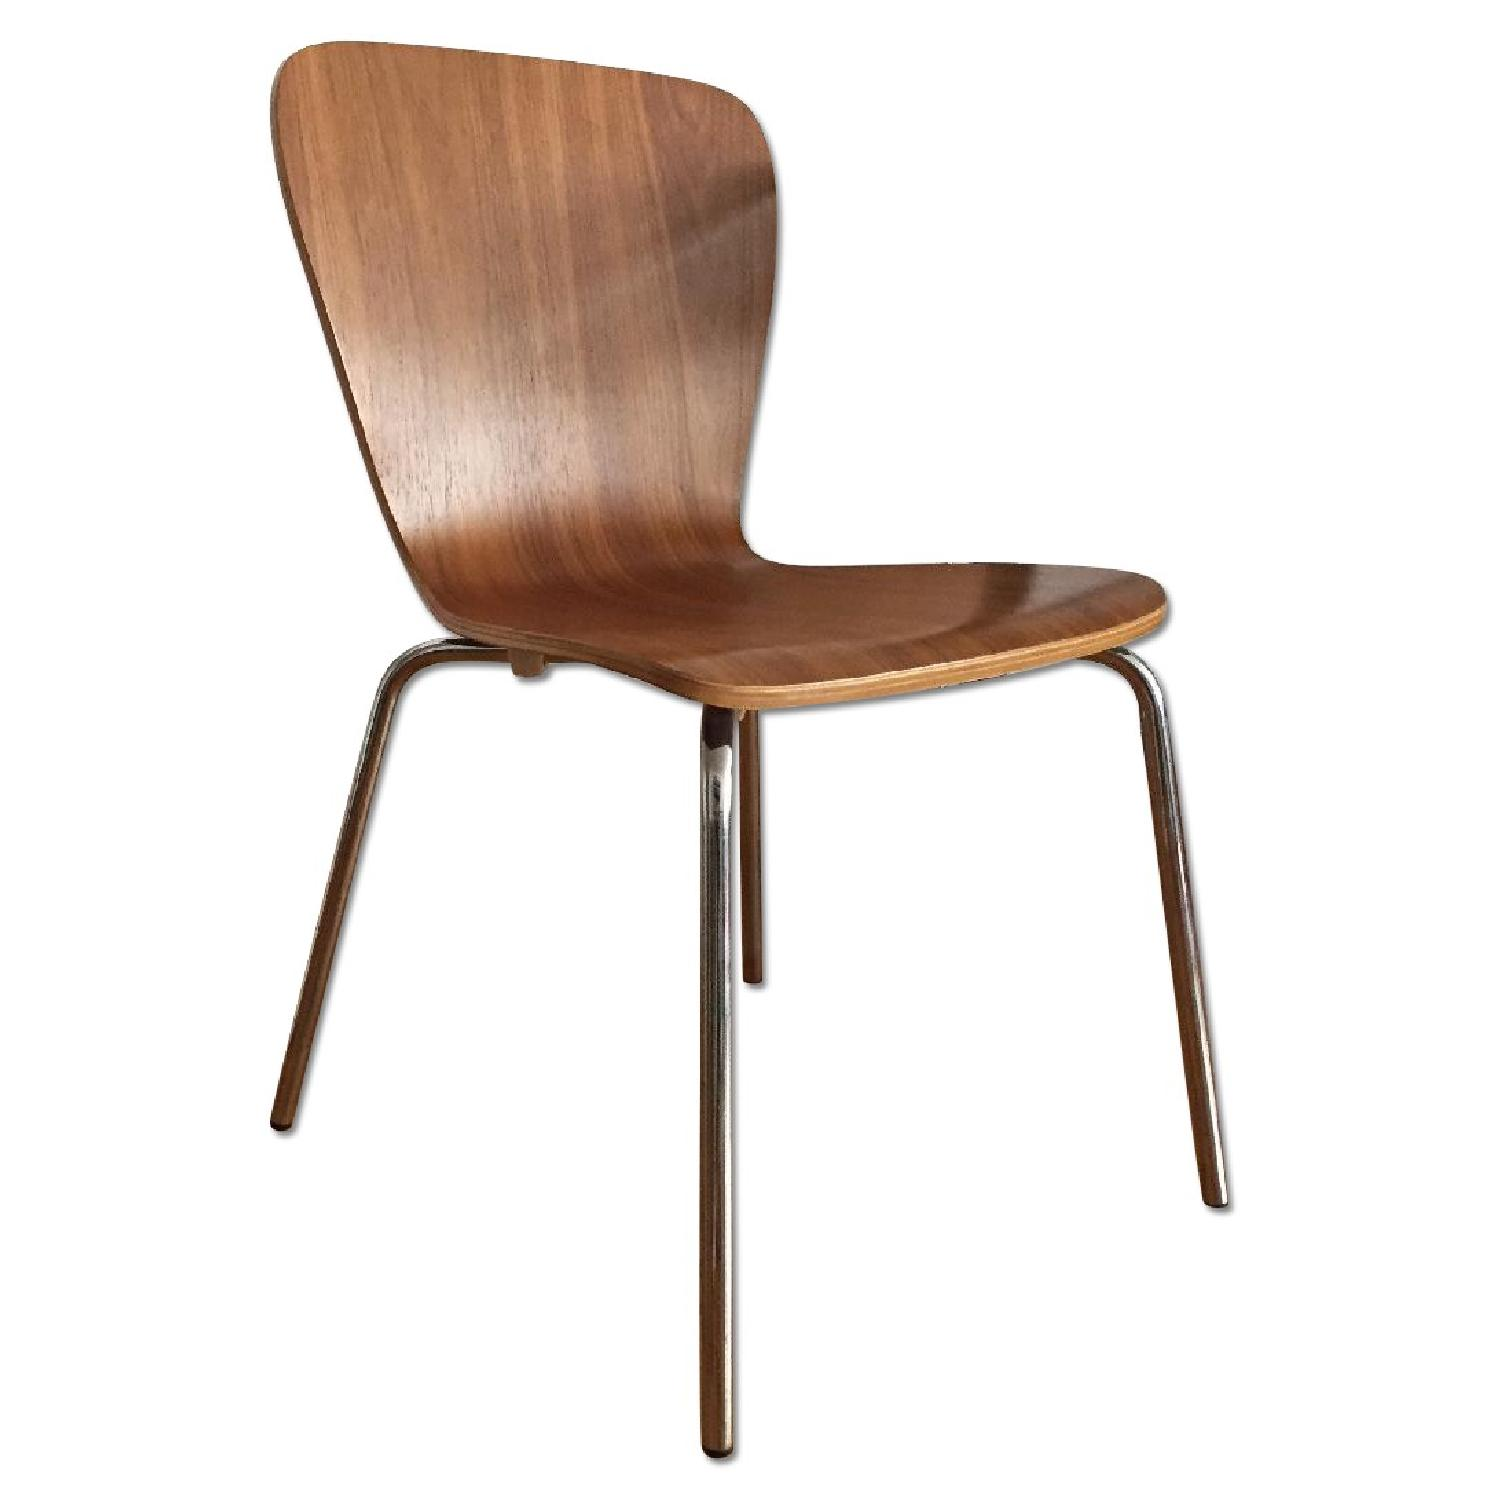 Crate & Barrel Modern Dining Chairs in Walnut Wood - image-0